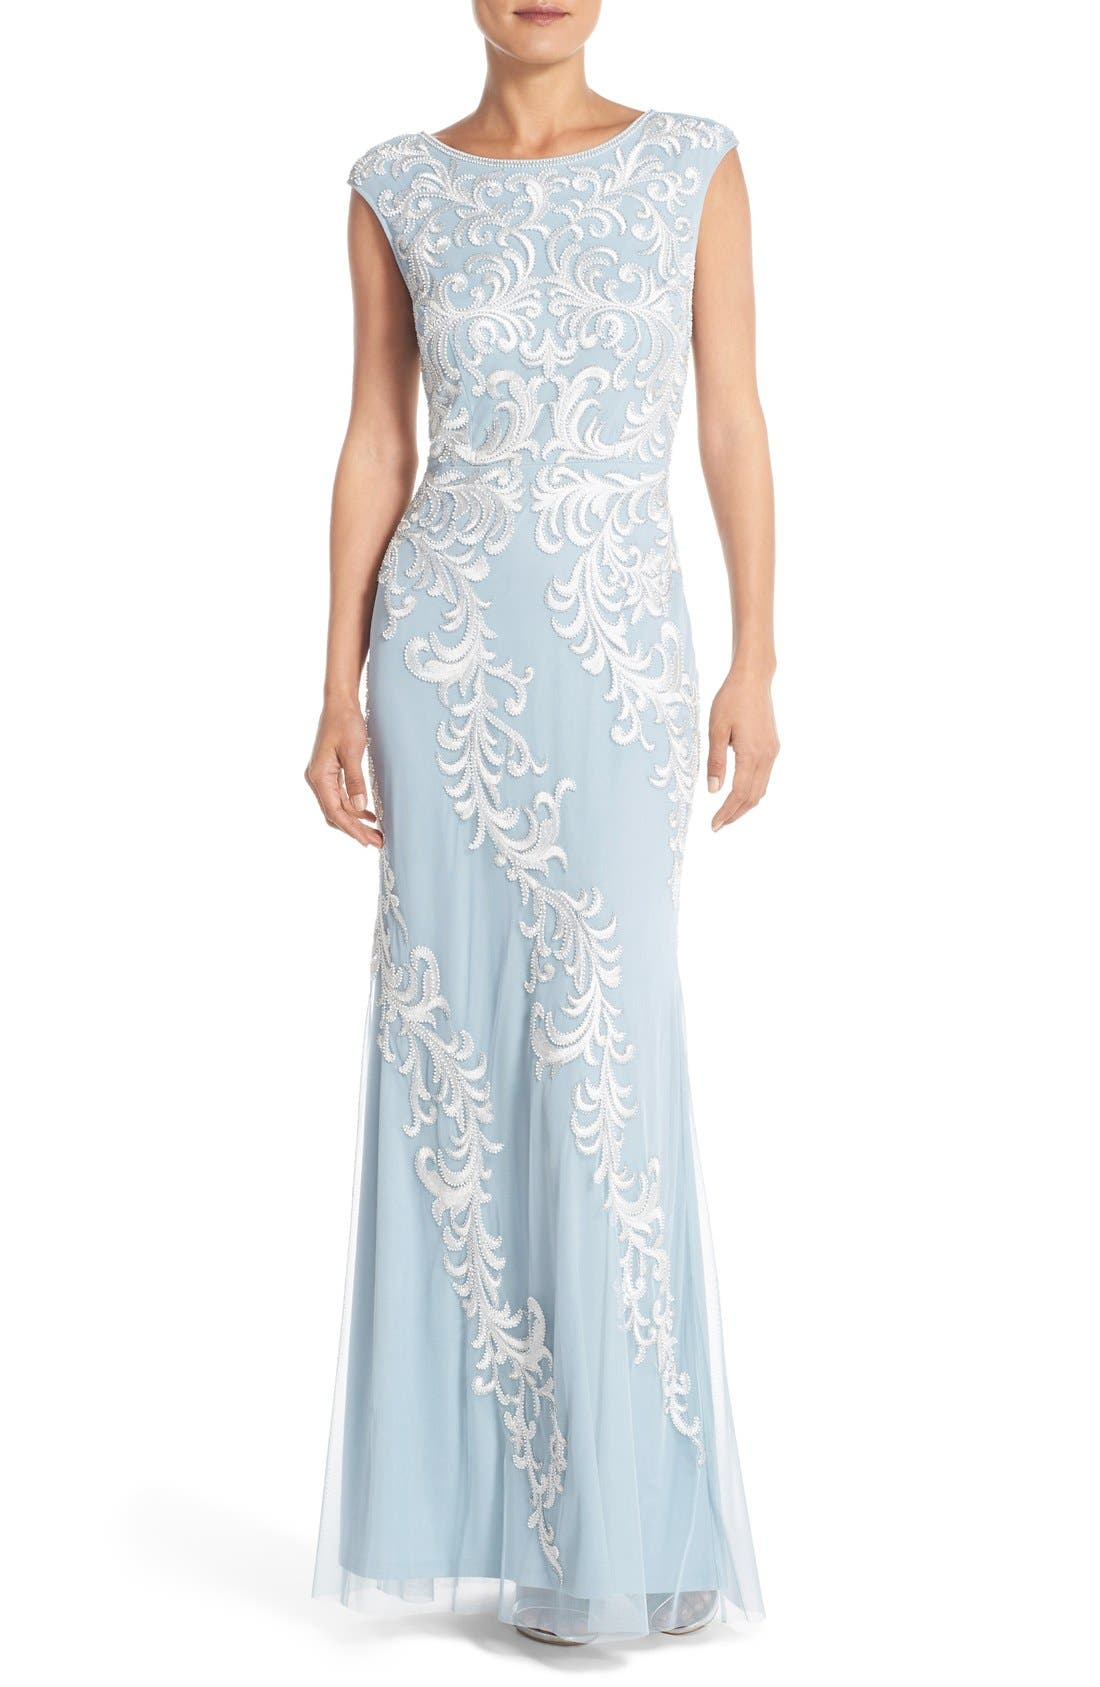 Alternate Image 1 Selected - Aidan Mattox Embroidered Mesh Gown